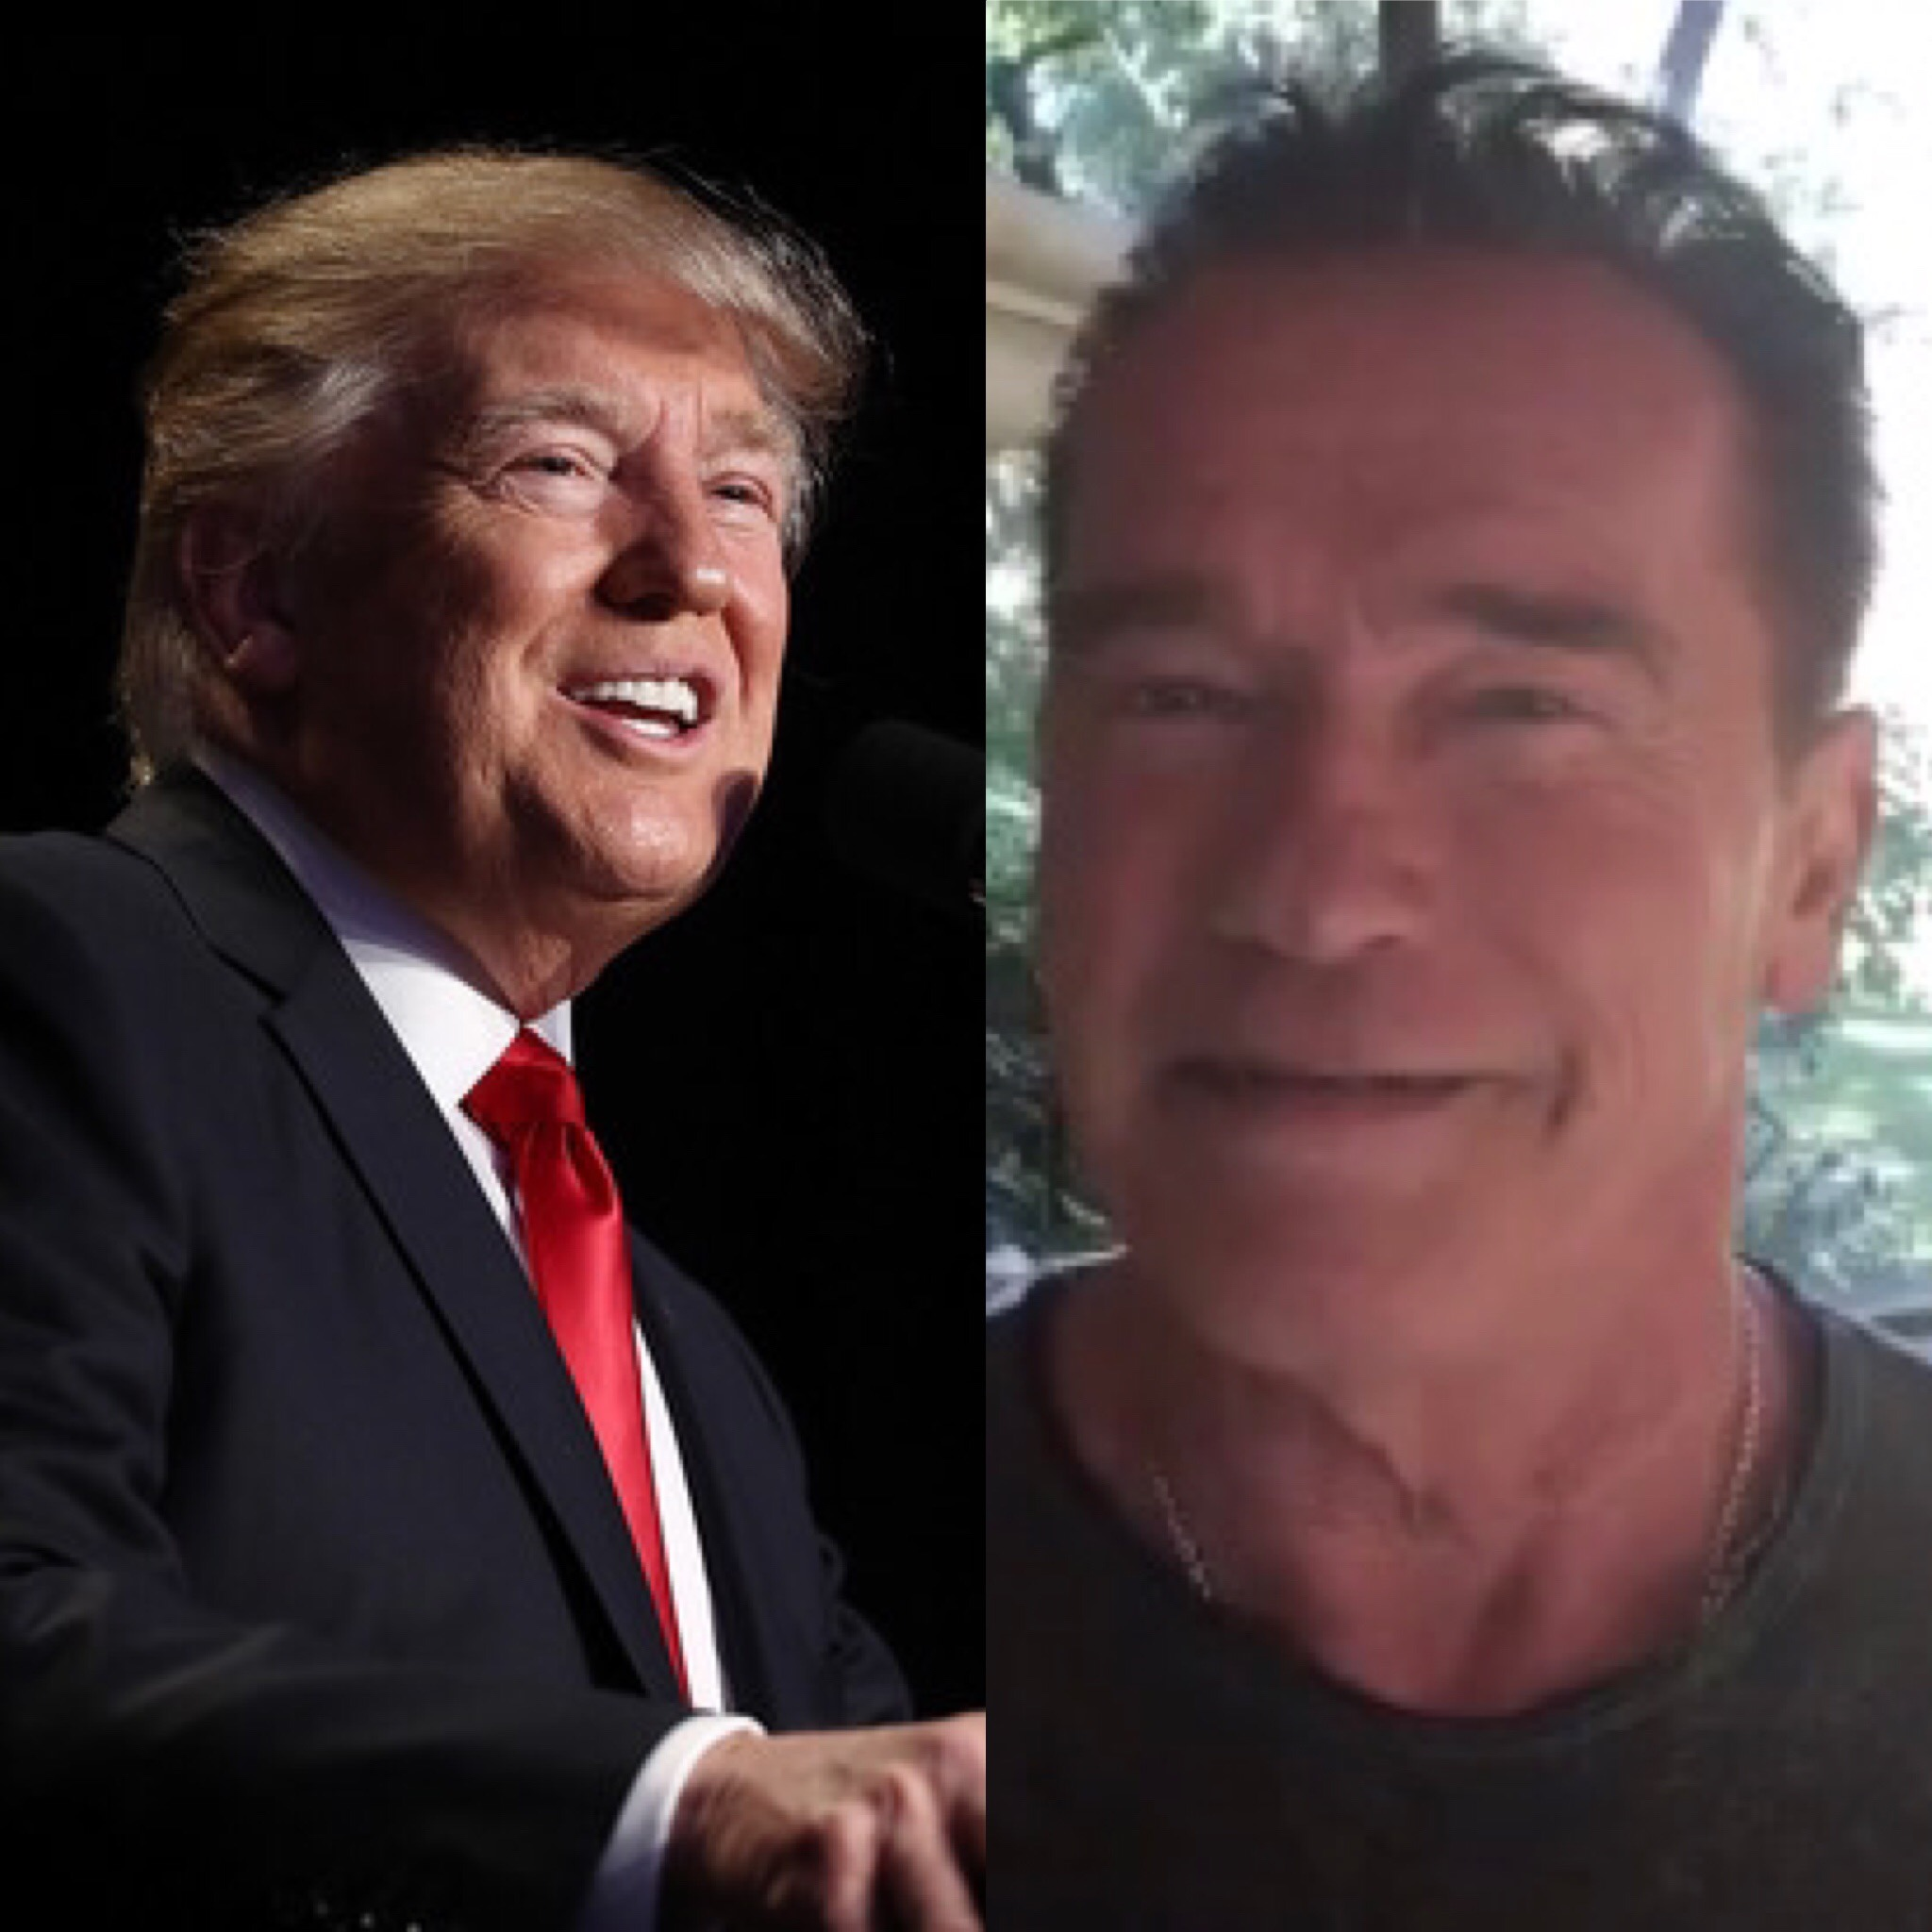 (L) President Donald Trump delivers remarks at the National Prayer Breakfast February 2, 2017 in Washington, DC; (R) Arnold Schwarzenegger (Twitter)